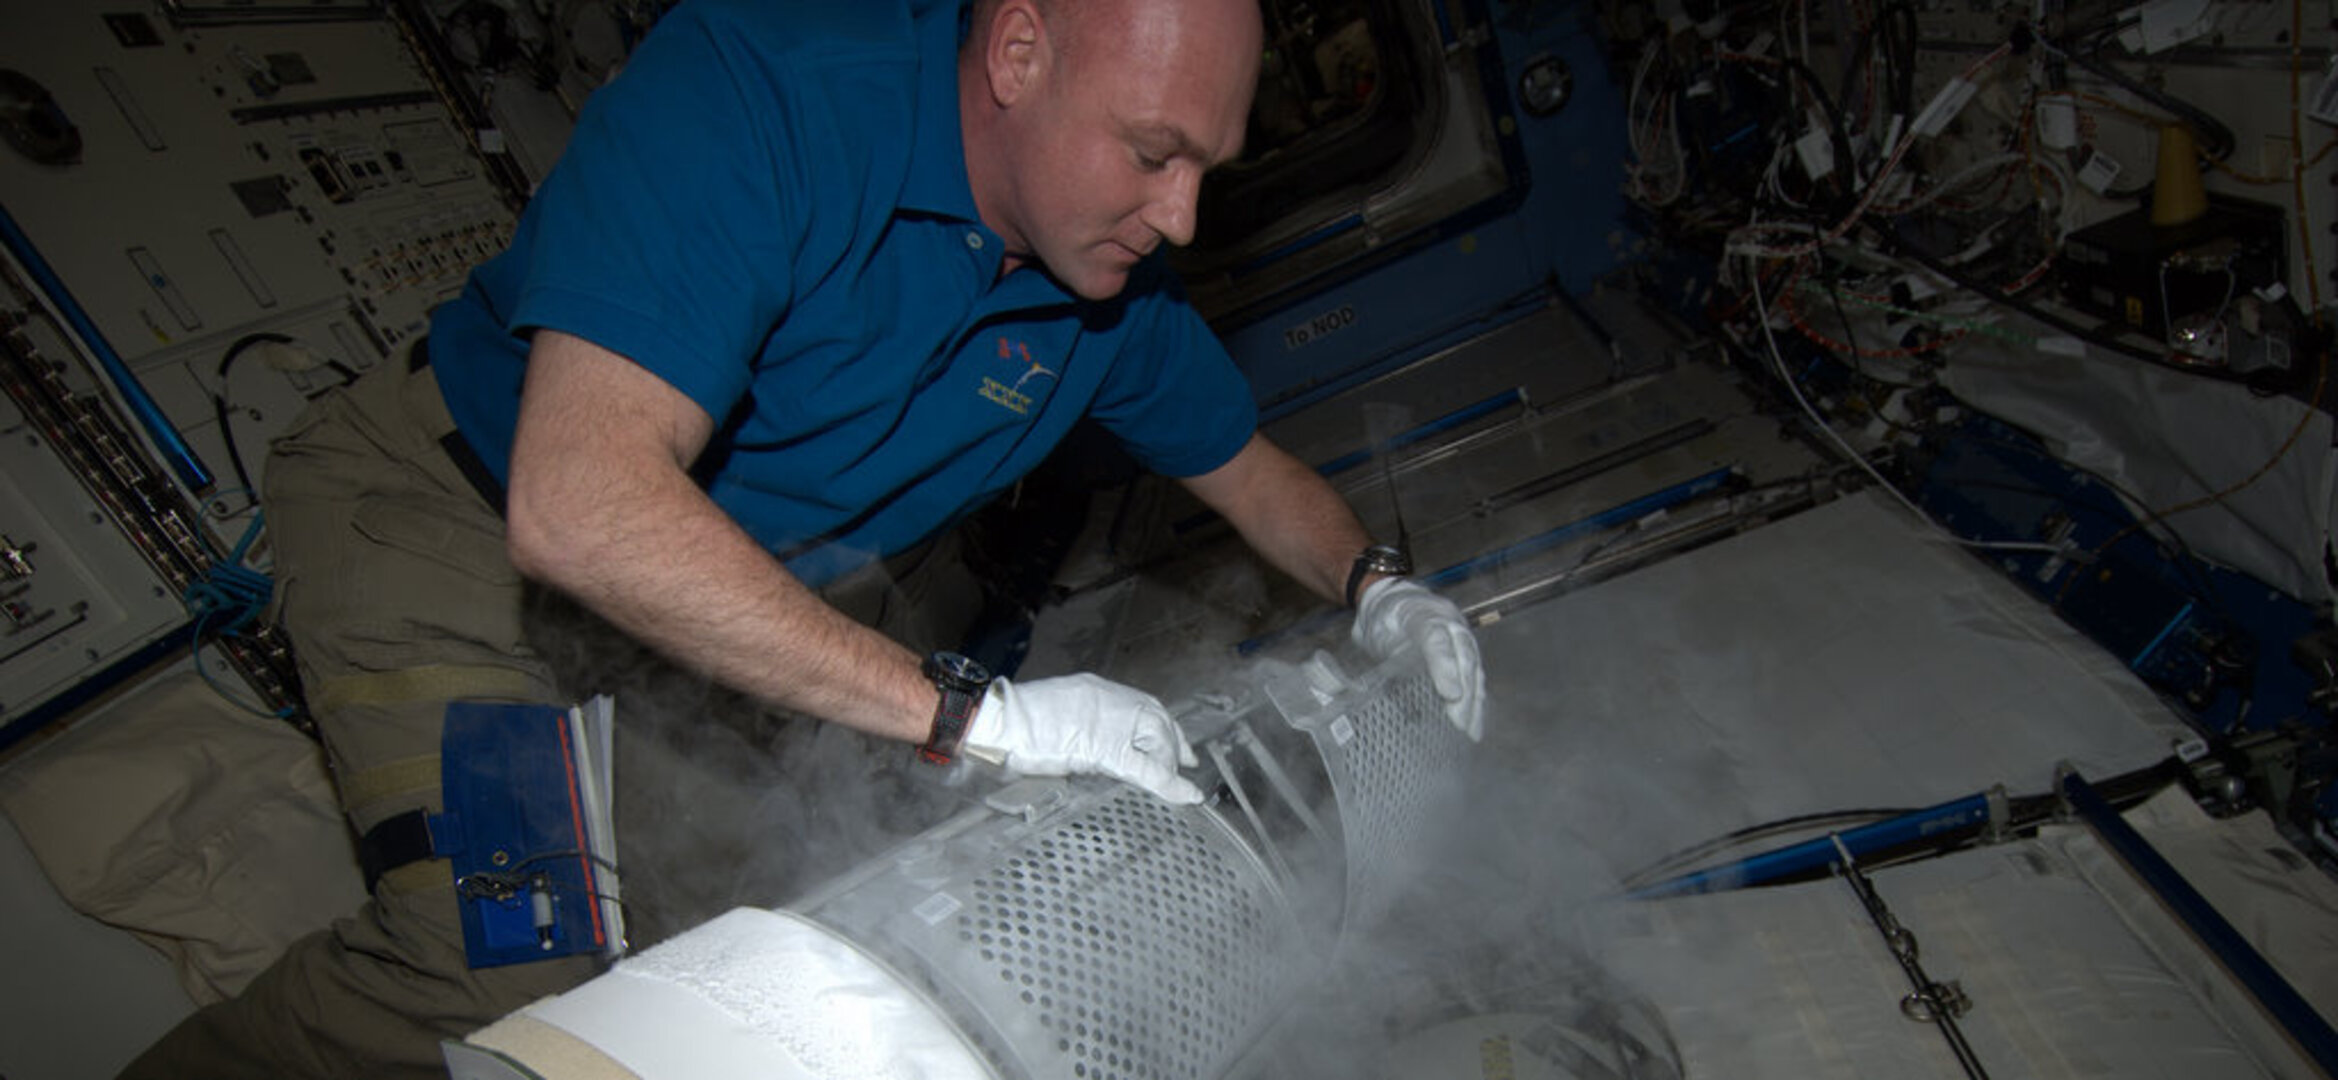 André Kuipers freezing samples